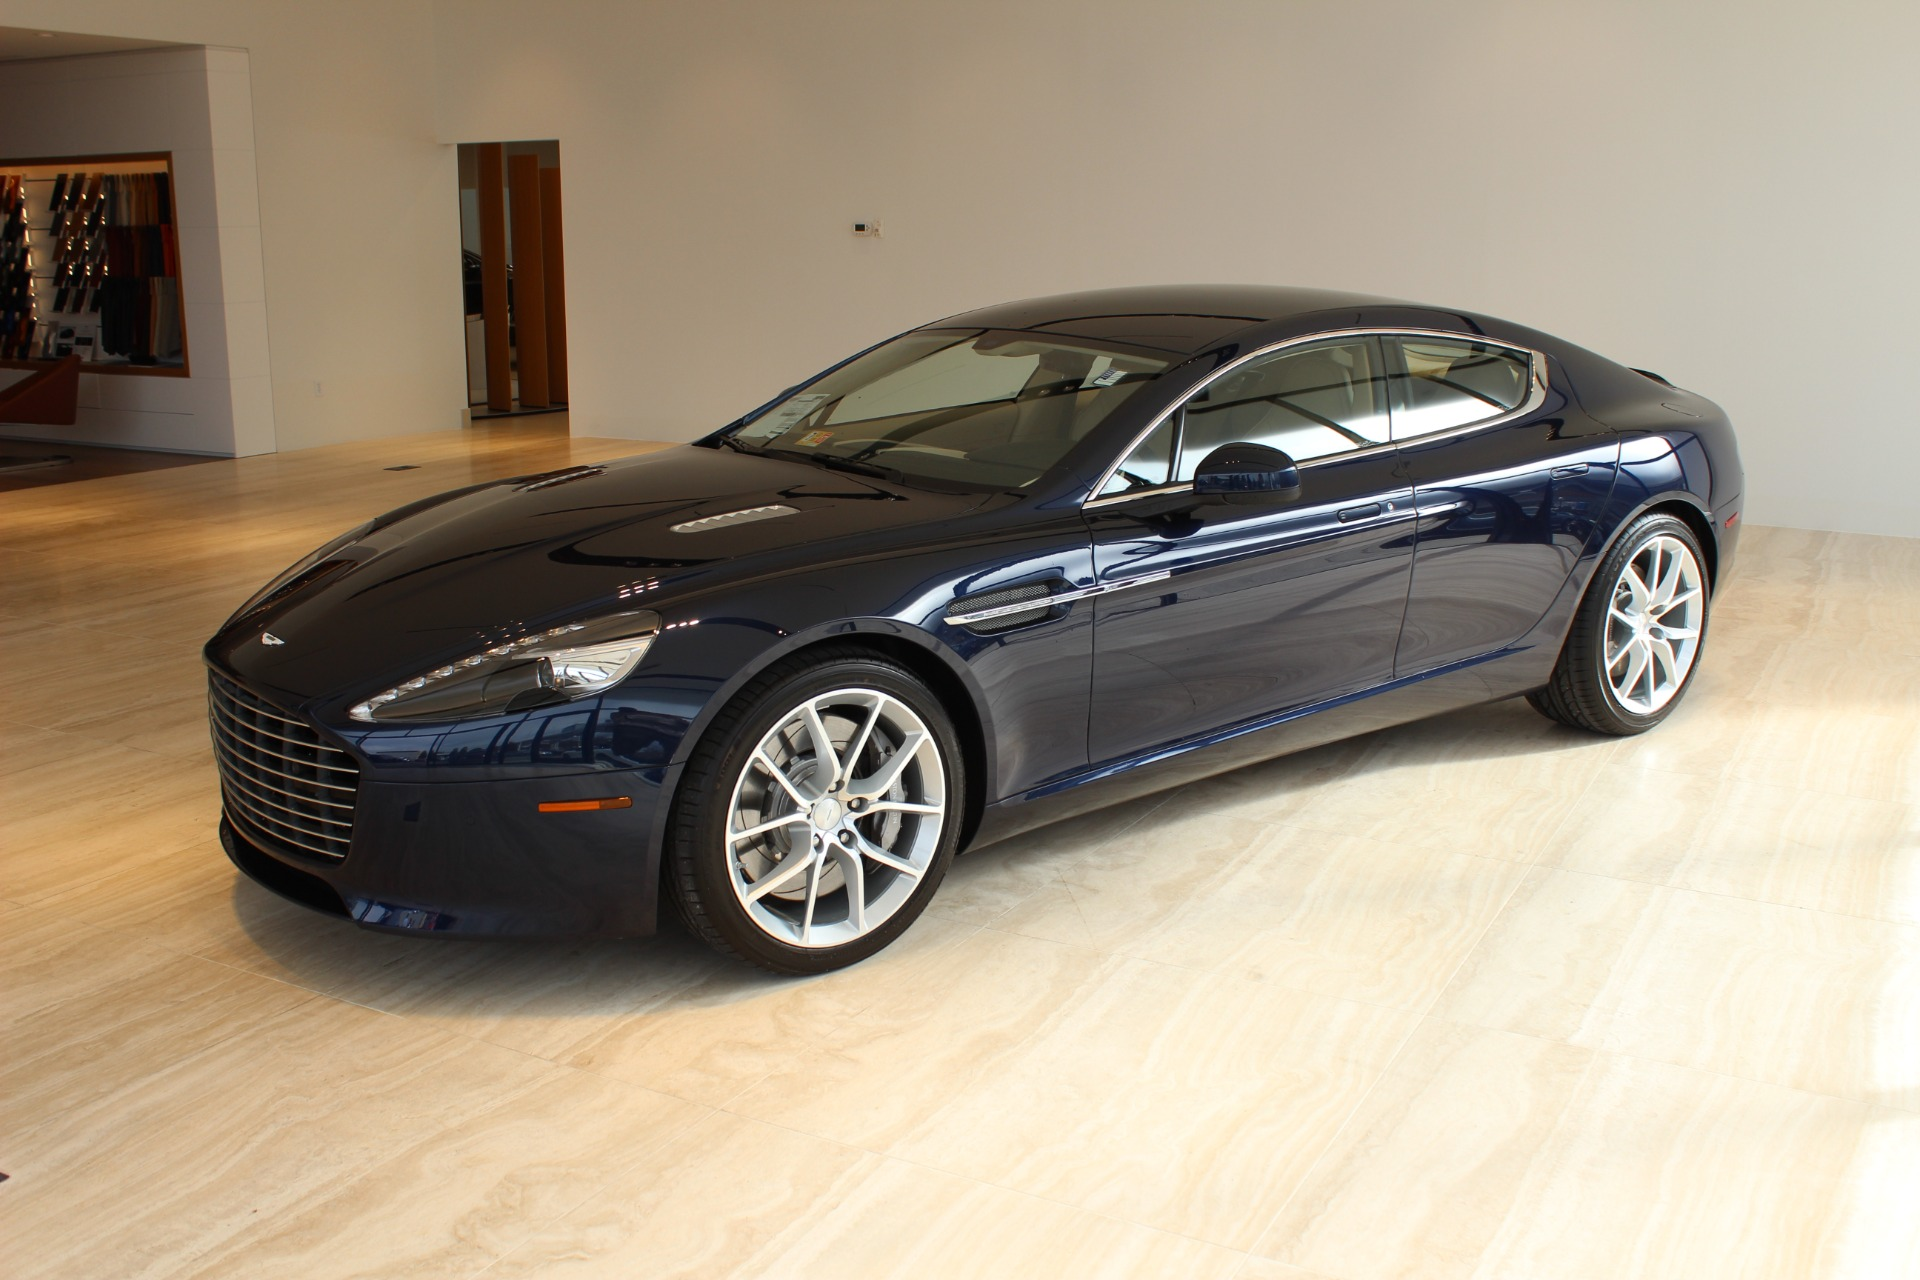 2016 aston martin rapide s stock # 6nf05498 for sale near vienna, va